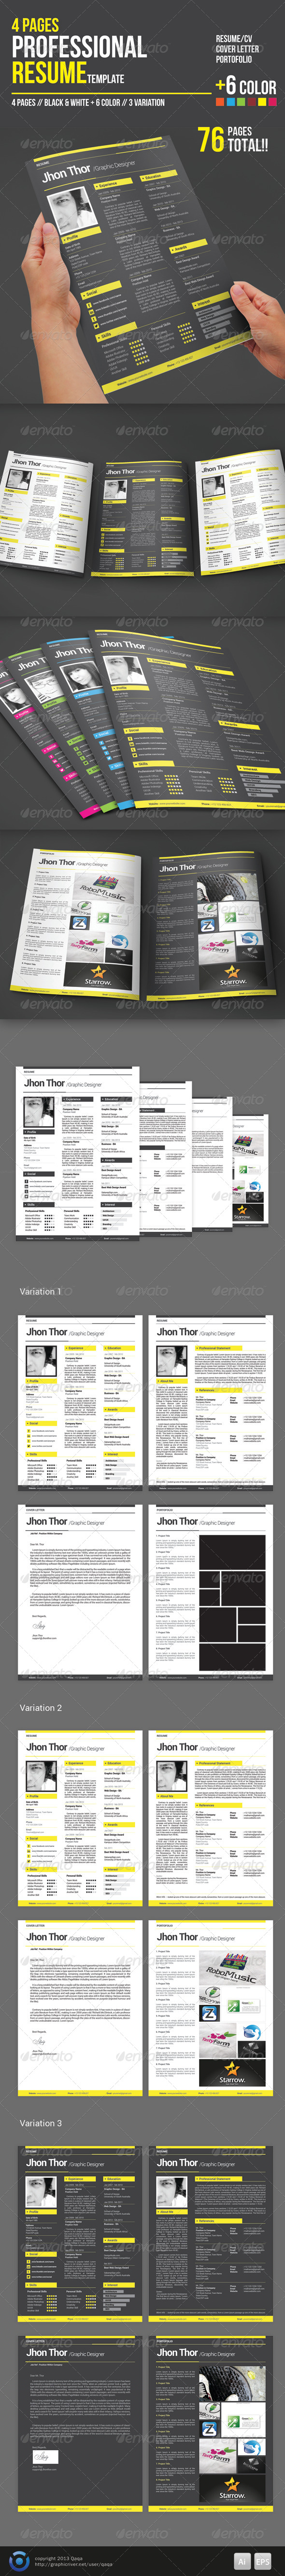 4 Pages Professional Resume Template - Resumes Stationery